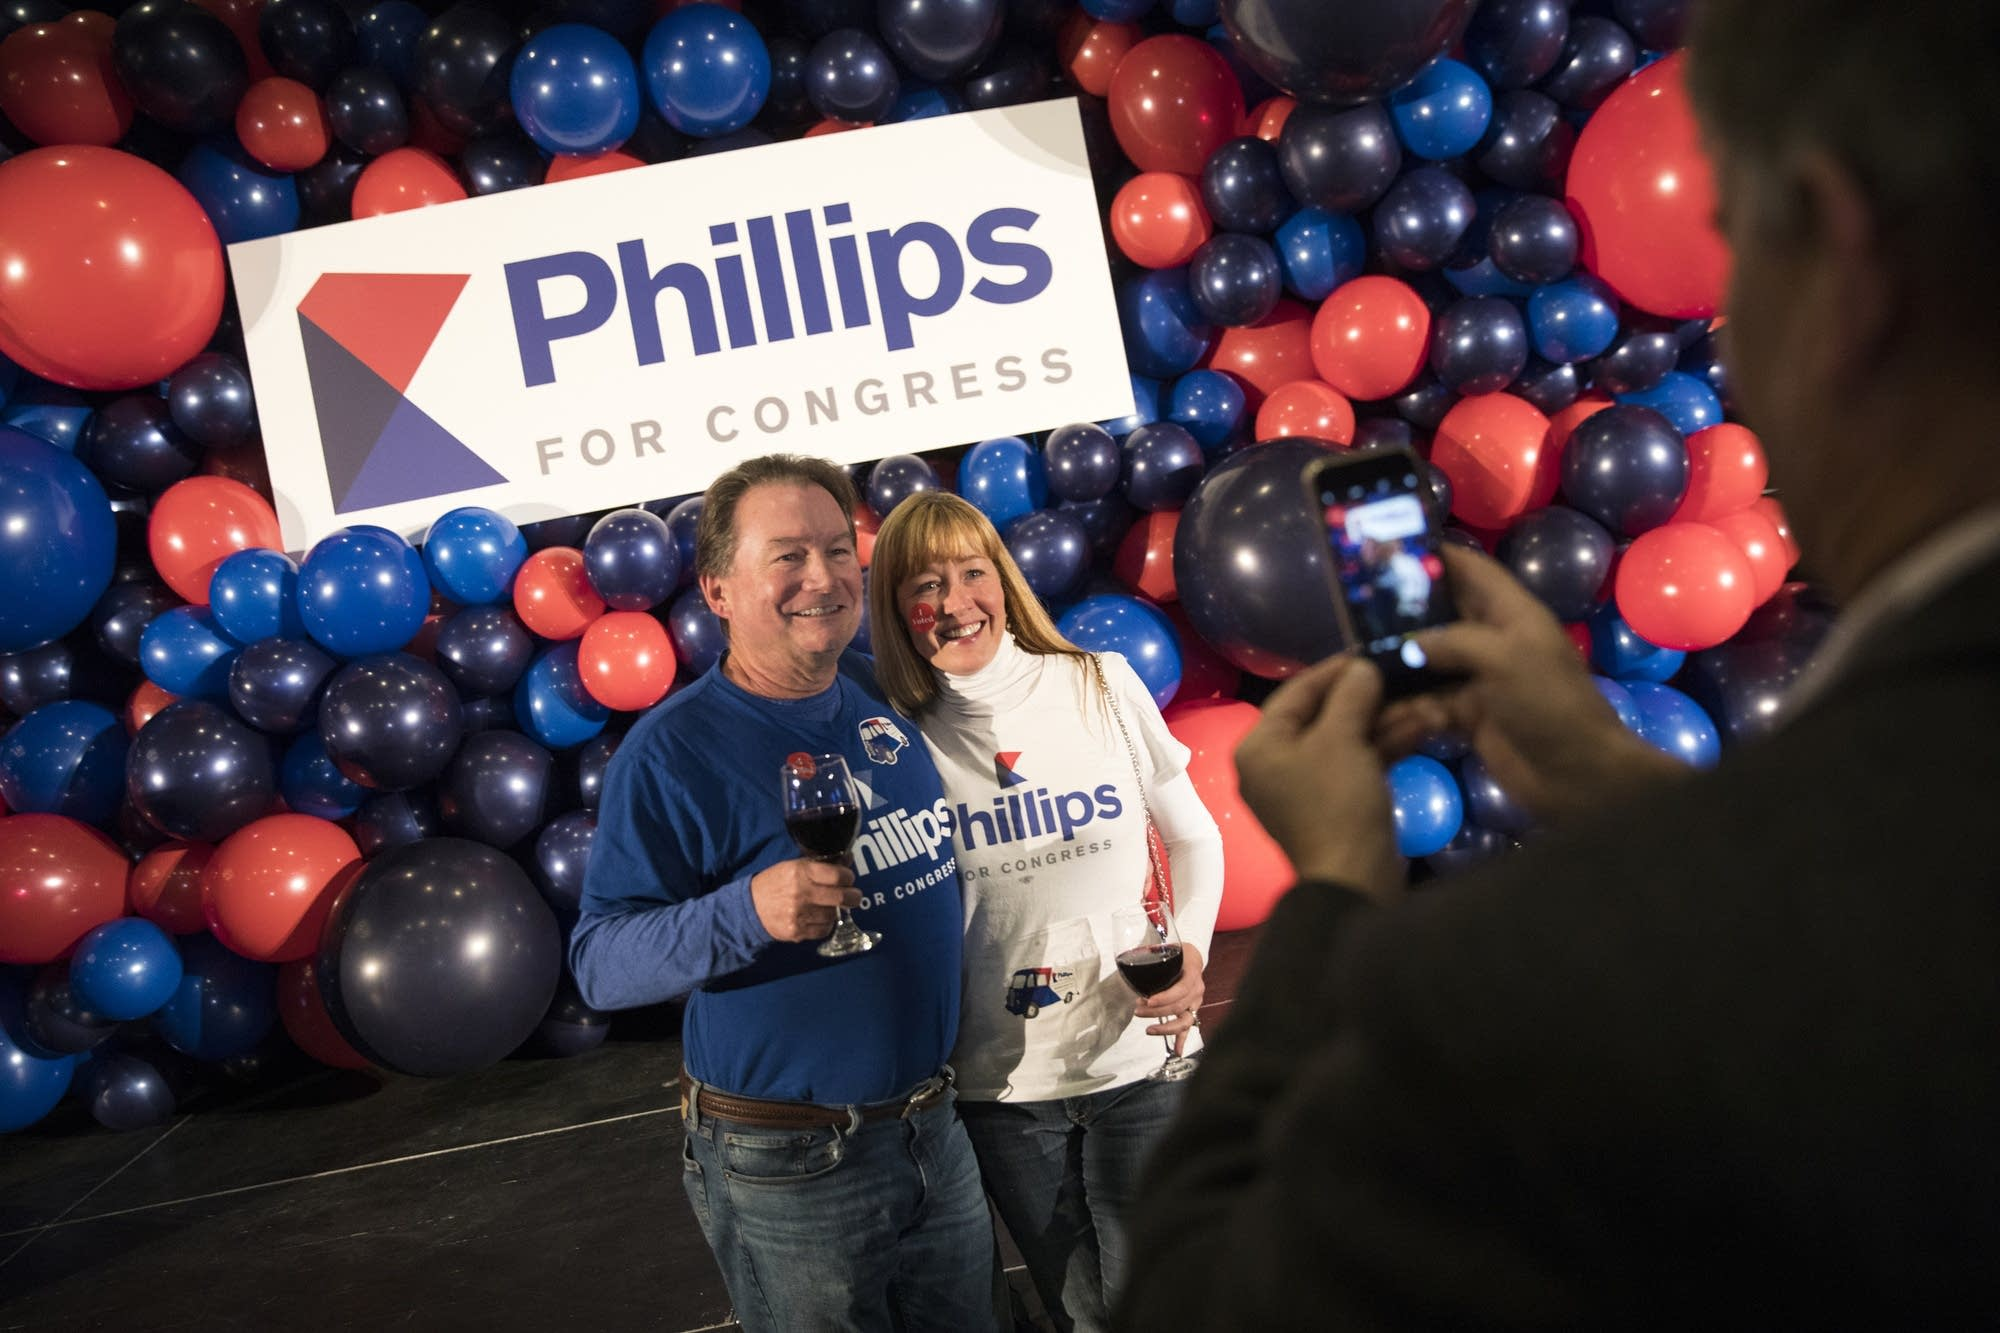 Phil and Liesl Forve take a picture together while awaiting results.